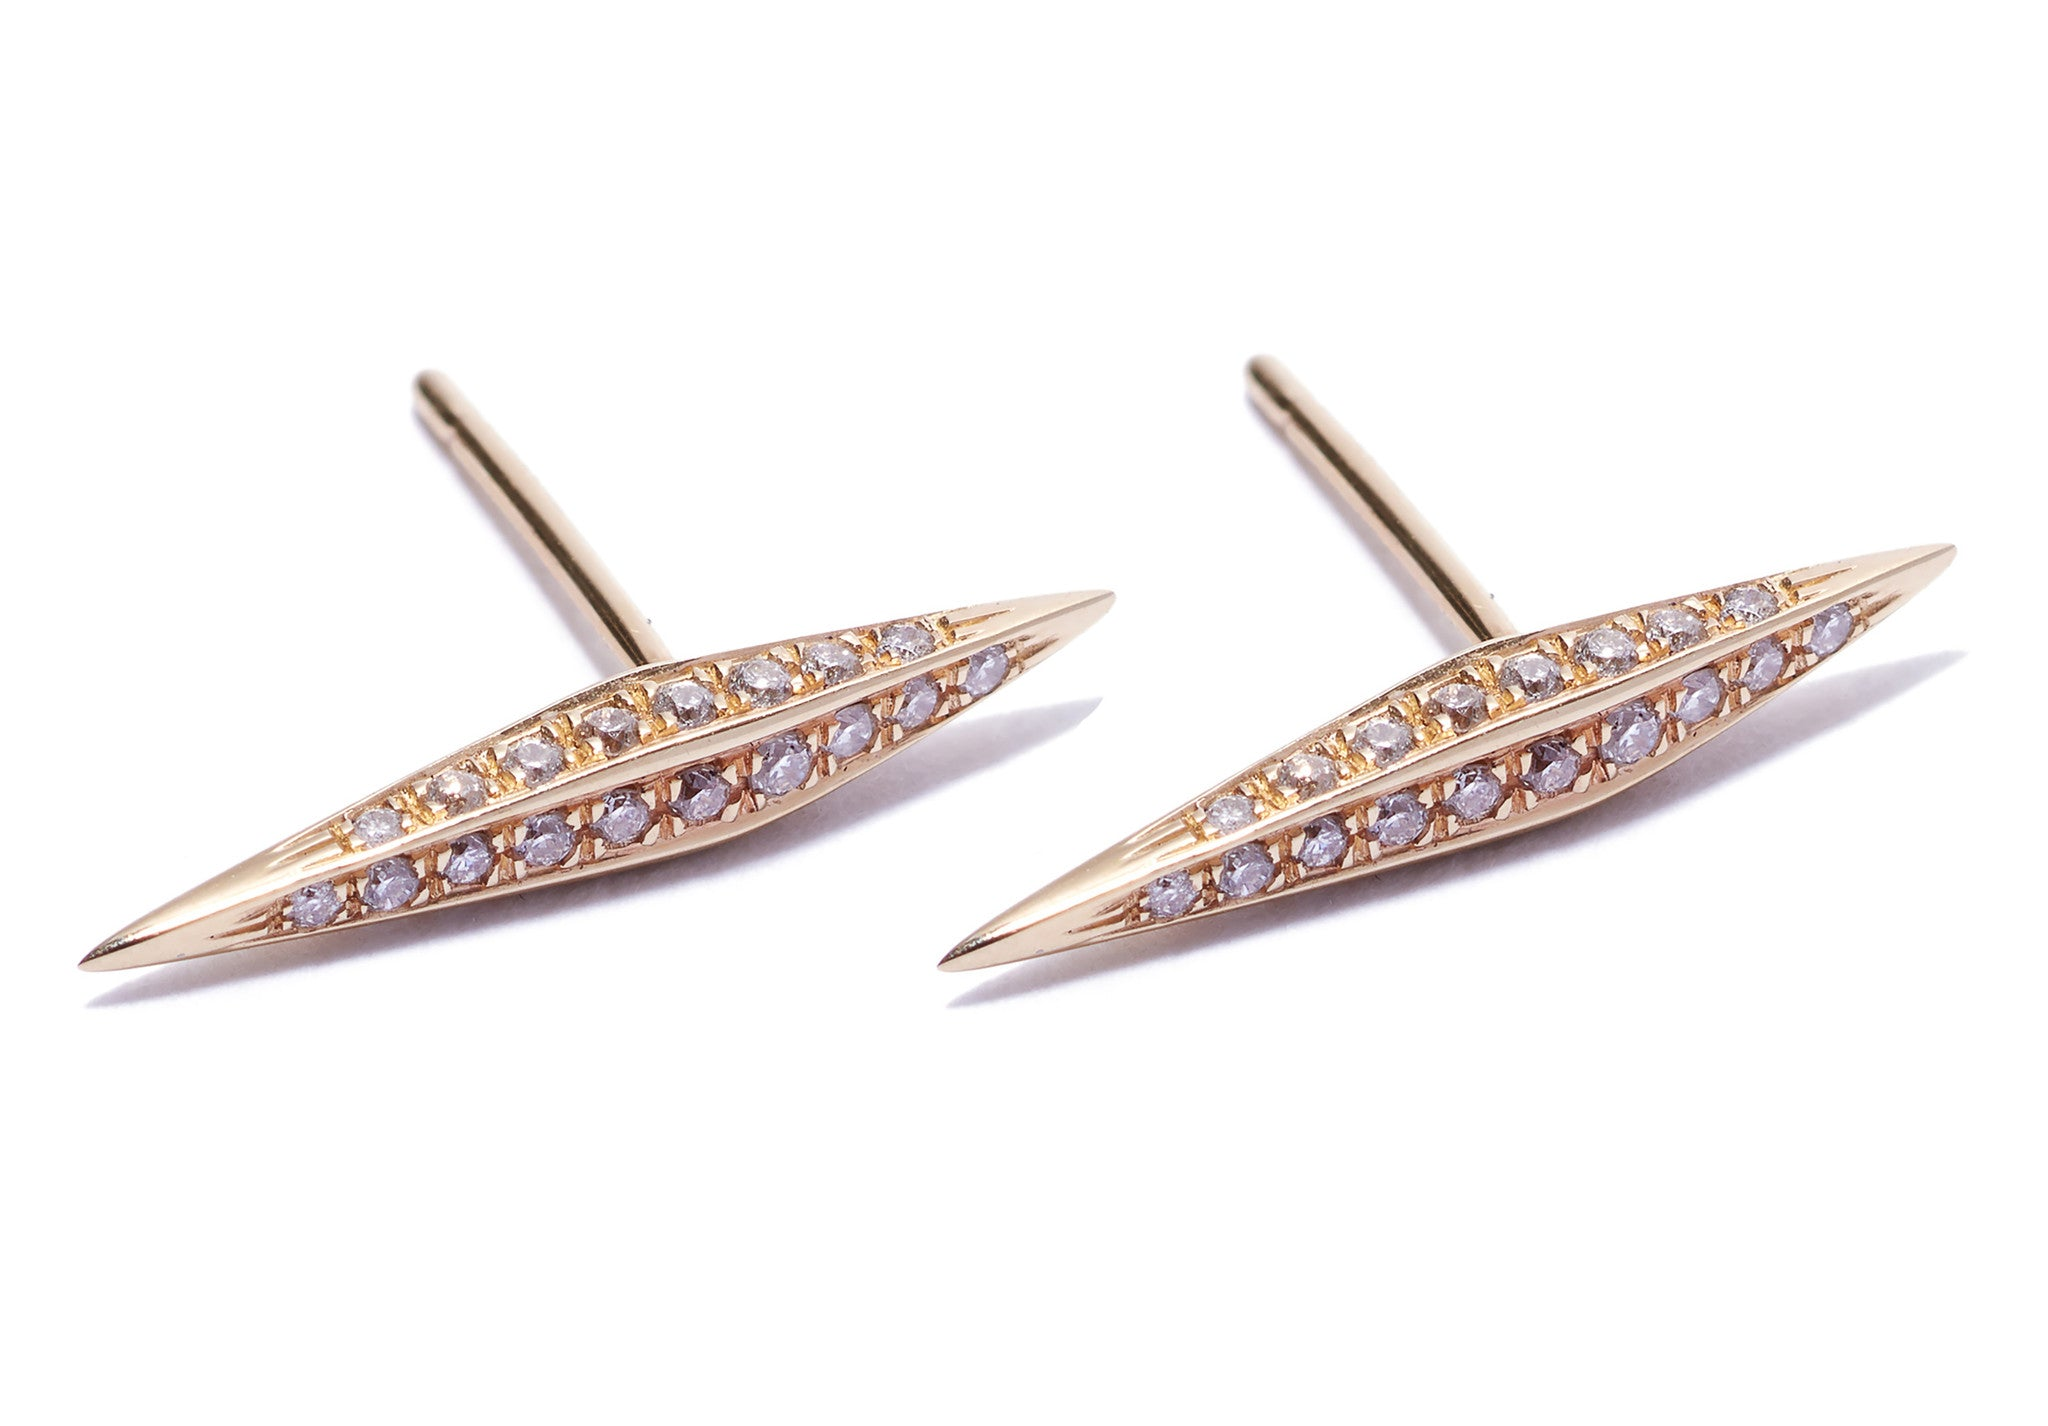 Micro Pave Diamond Thin DT Pyramid Spike Stud Earrings Wendy Nichol Earrings fine jewelry designer delicate simple spike double terminating 14k Gold White Diamonds Black Diamonds